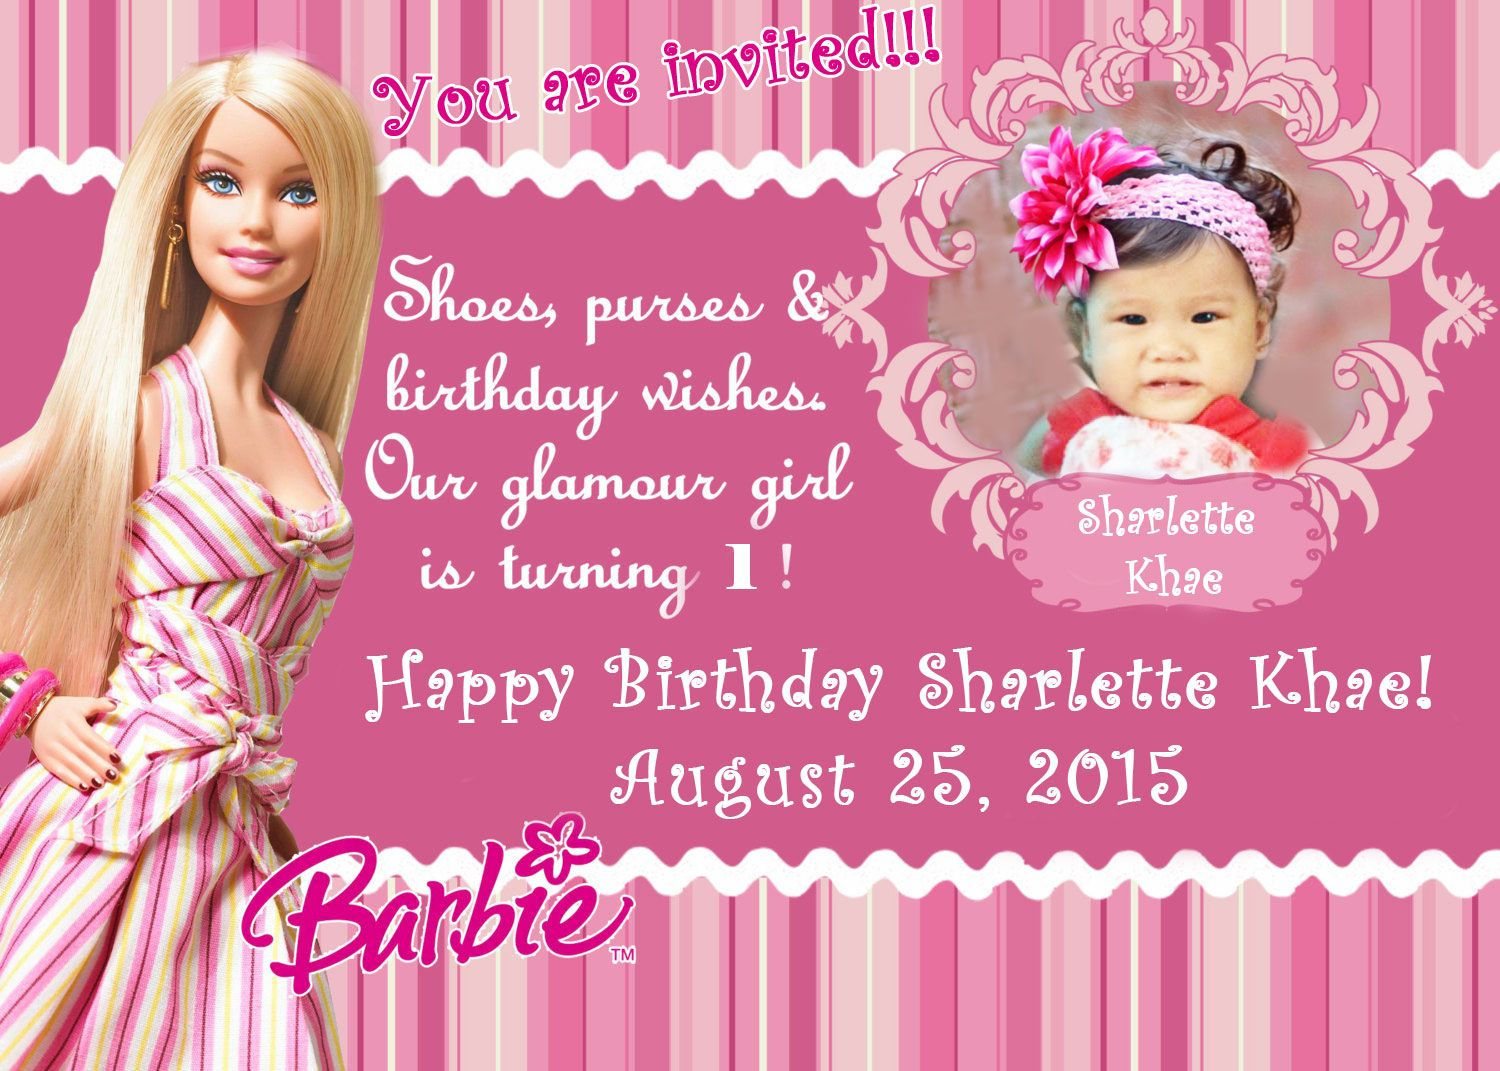 Barbie Invitation Template Google Search Avery S 6th Birthday